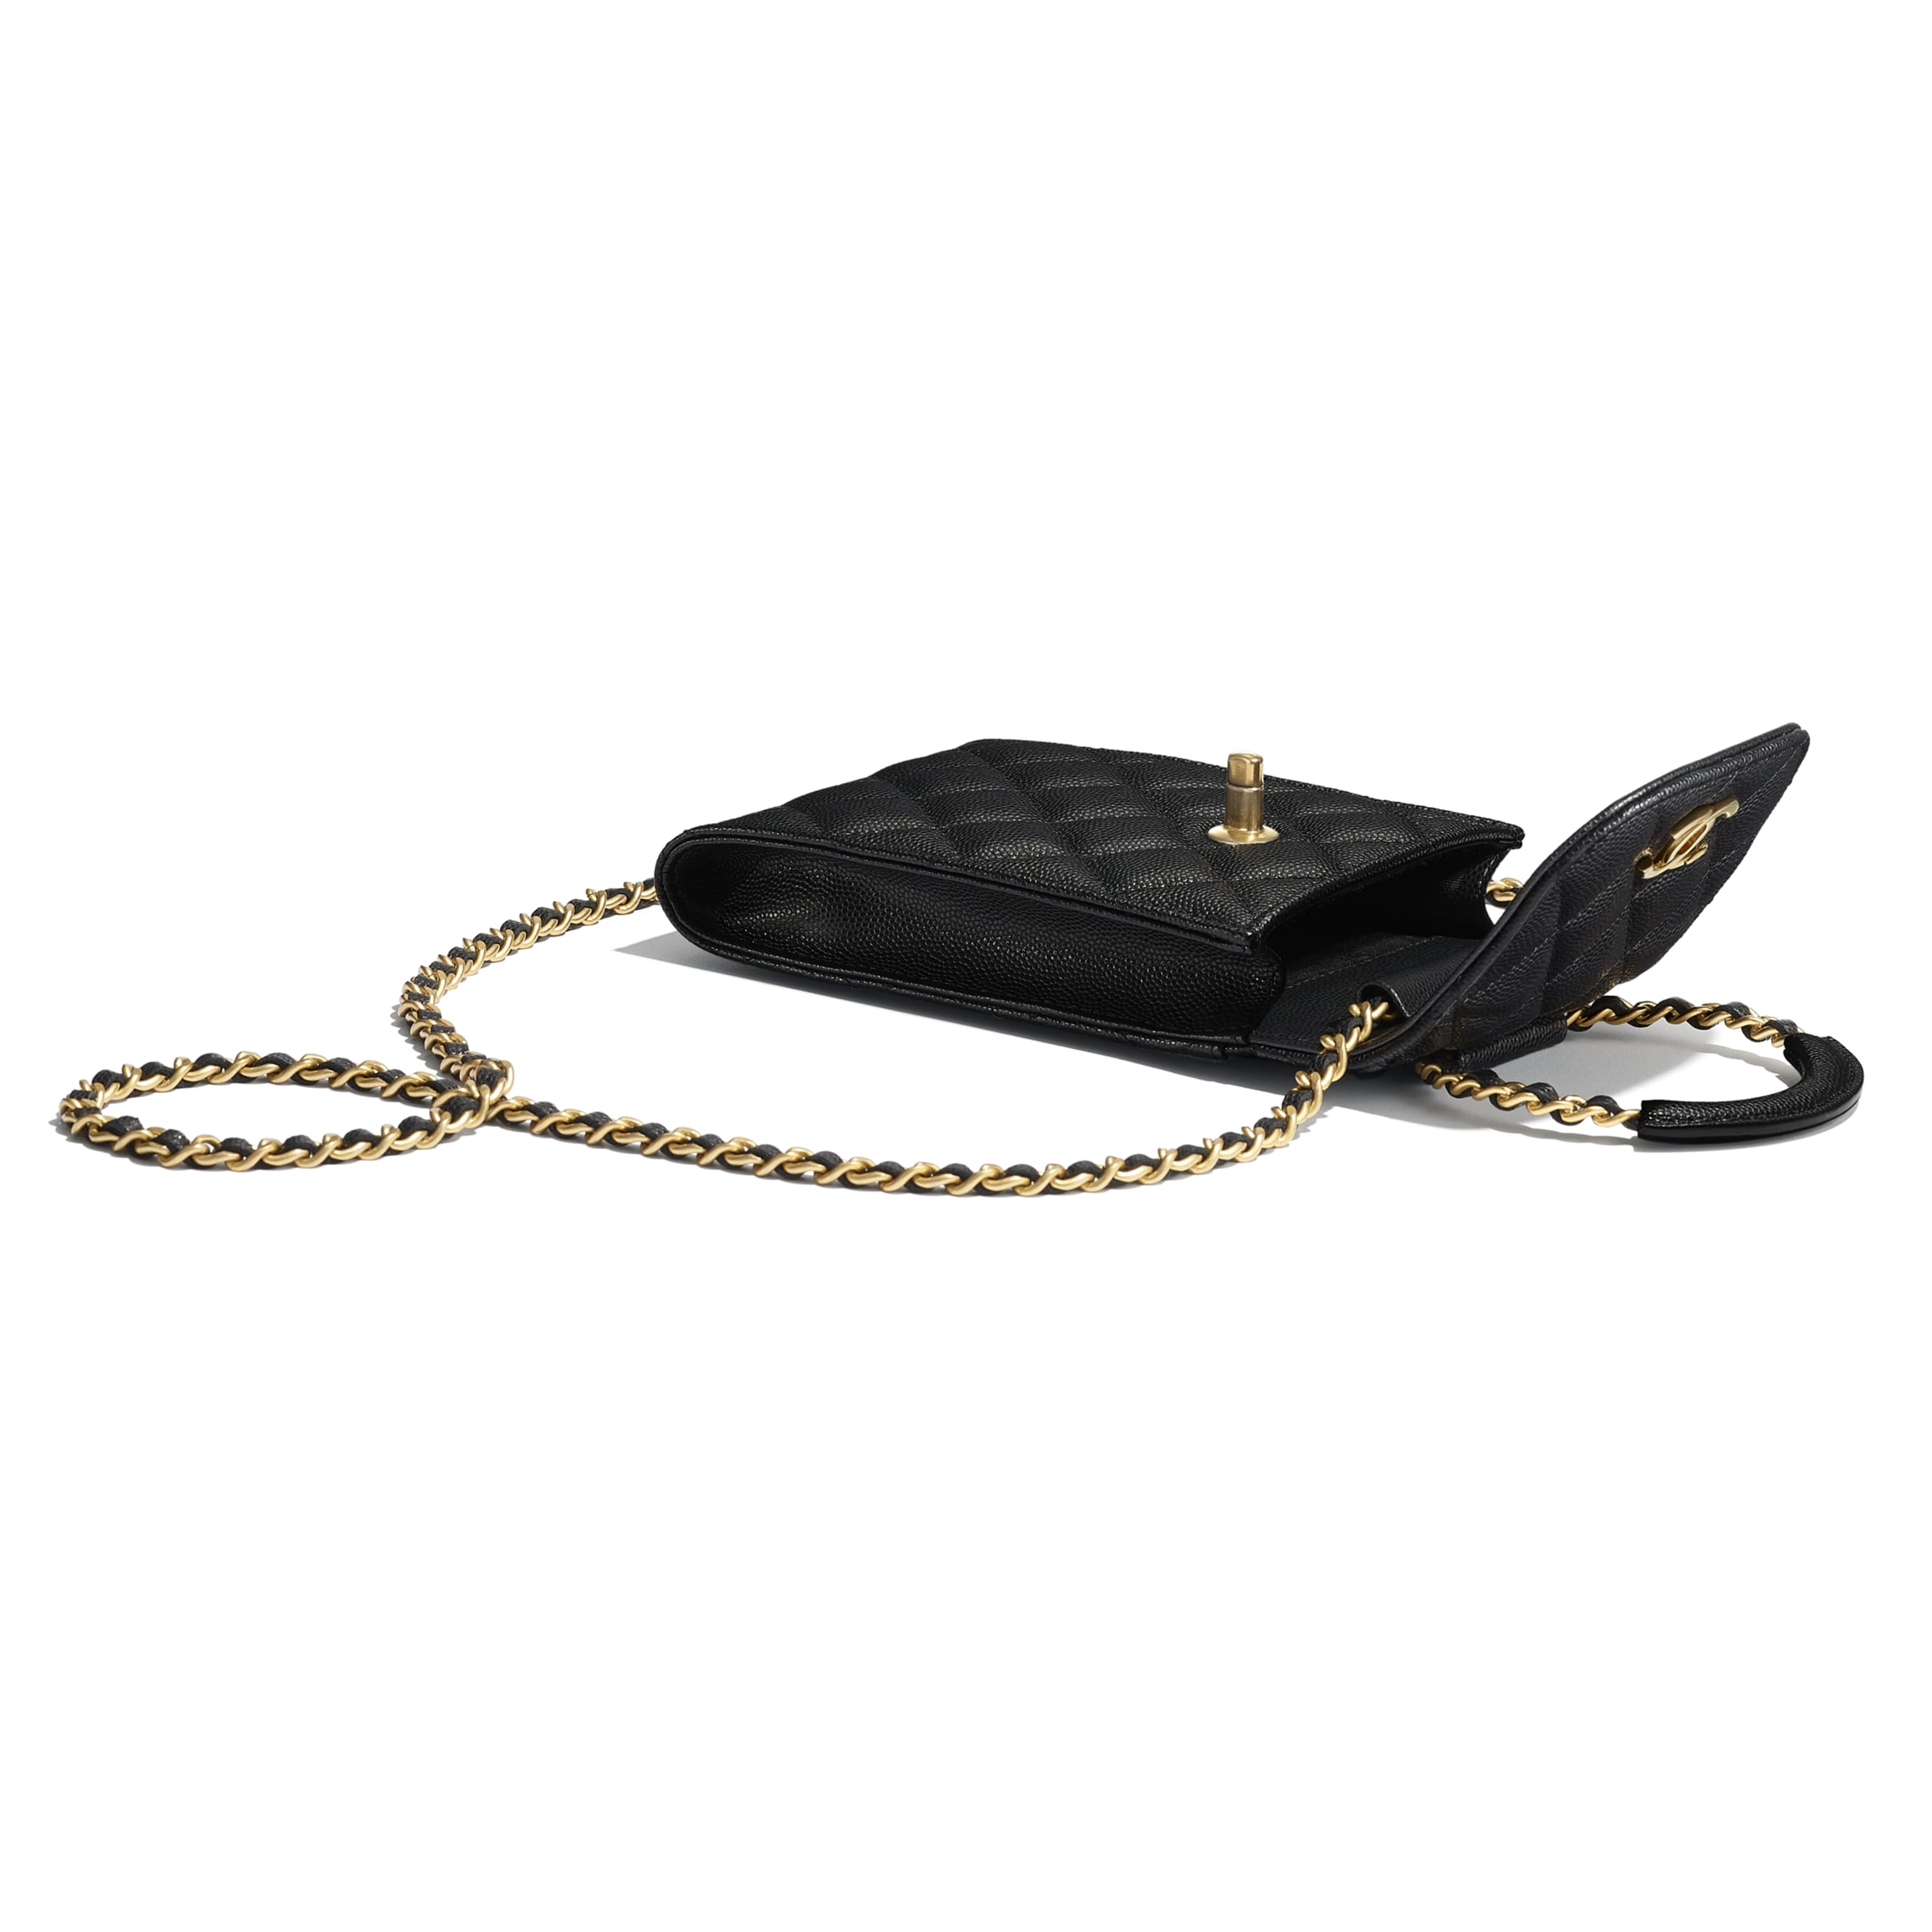 Phone Holder With Chain - Black - Grained Shiny Calfskin & Gold-Tone Metal - Extra view - see standard sized version